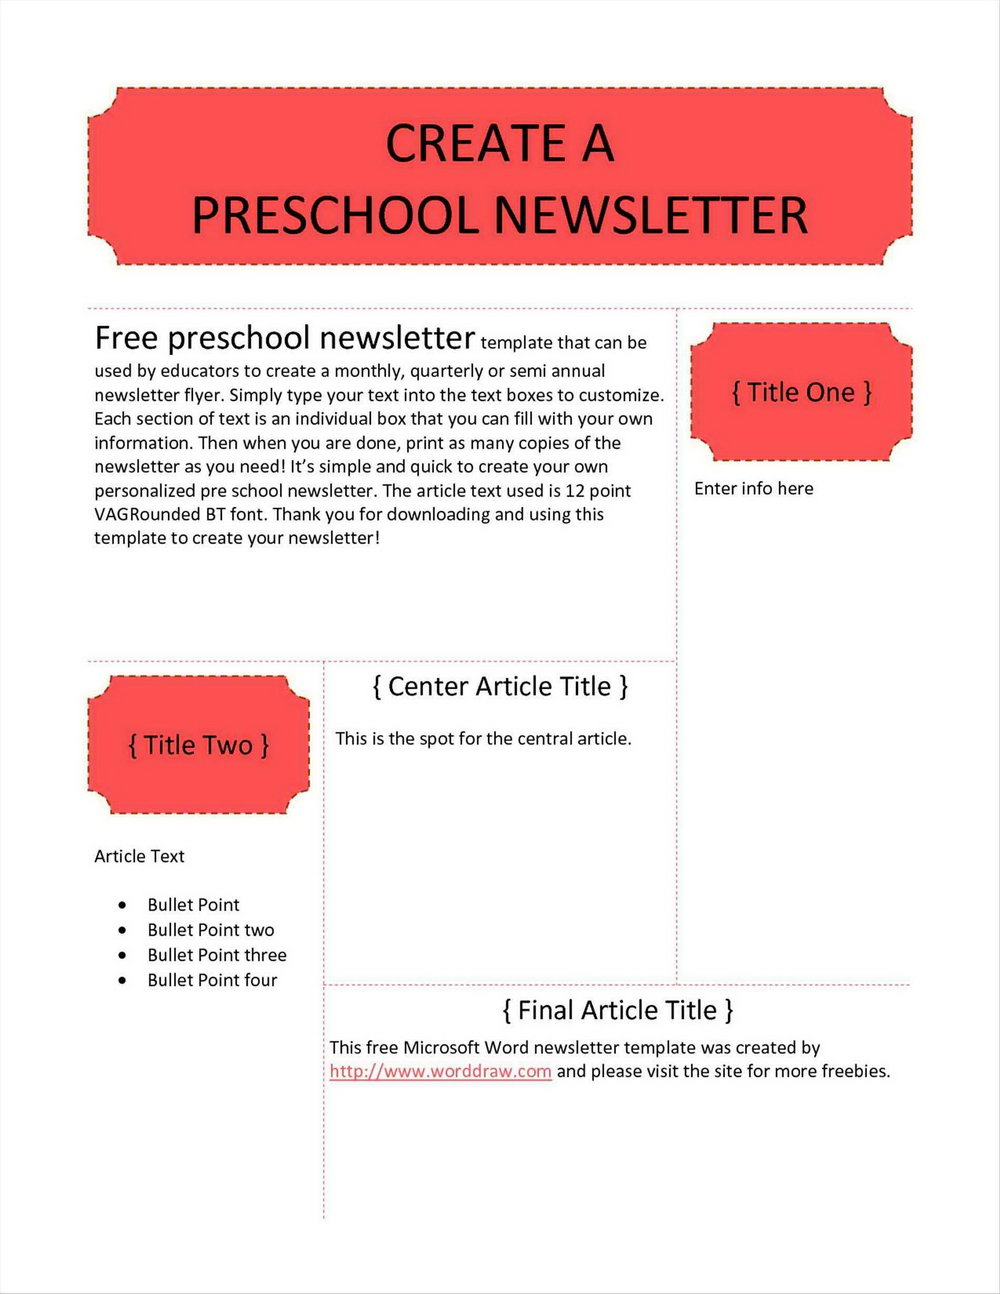 Free Preschool Newsletter Templates For Teachers